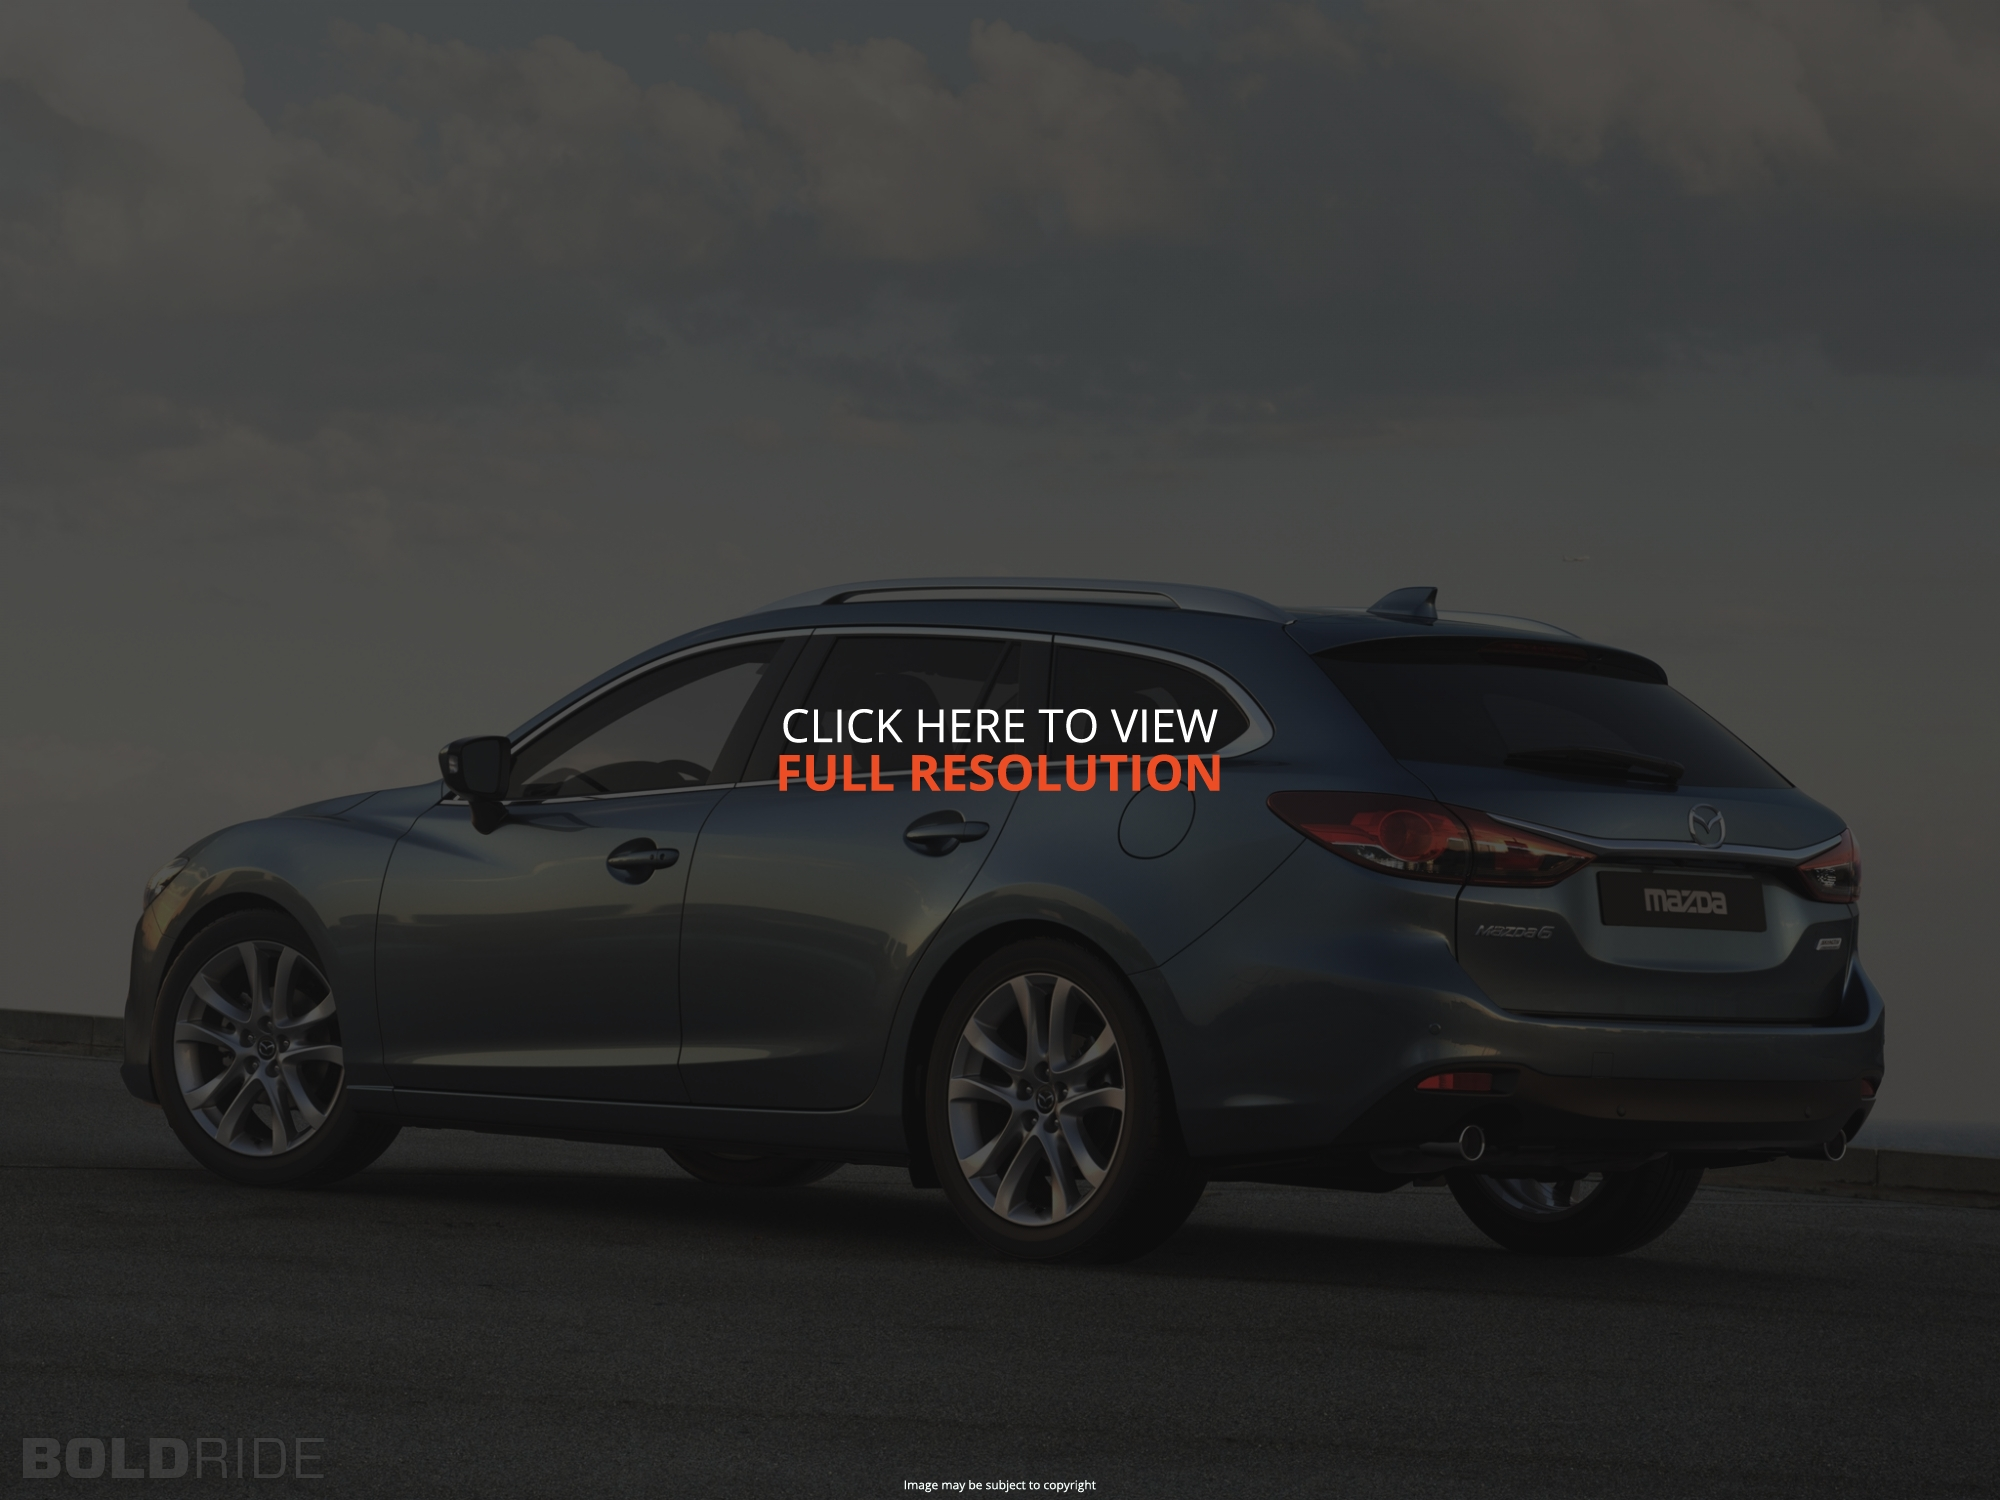 2014 Mazda Mazda 6 wagon – pictures information and specs